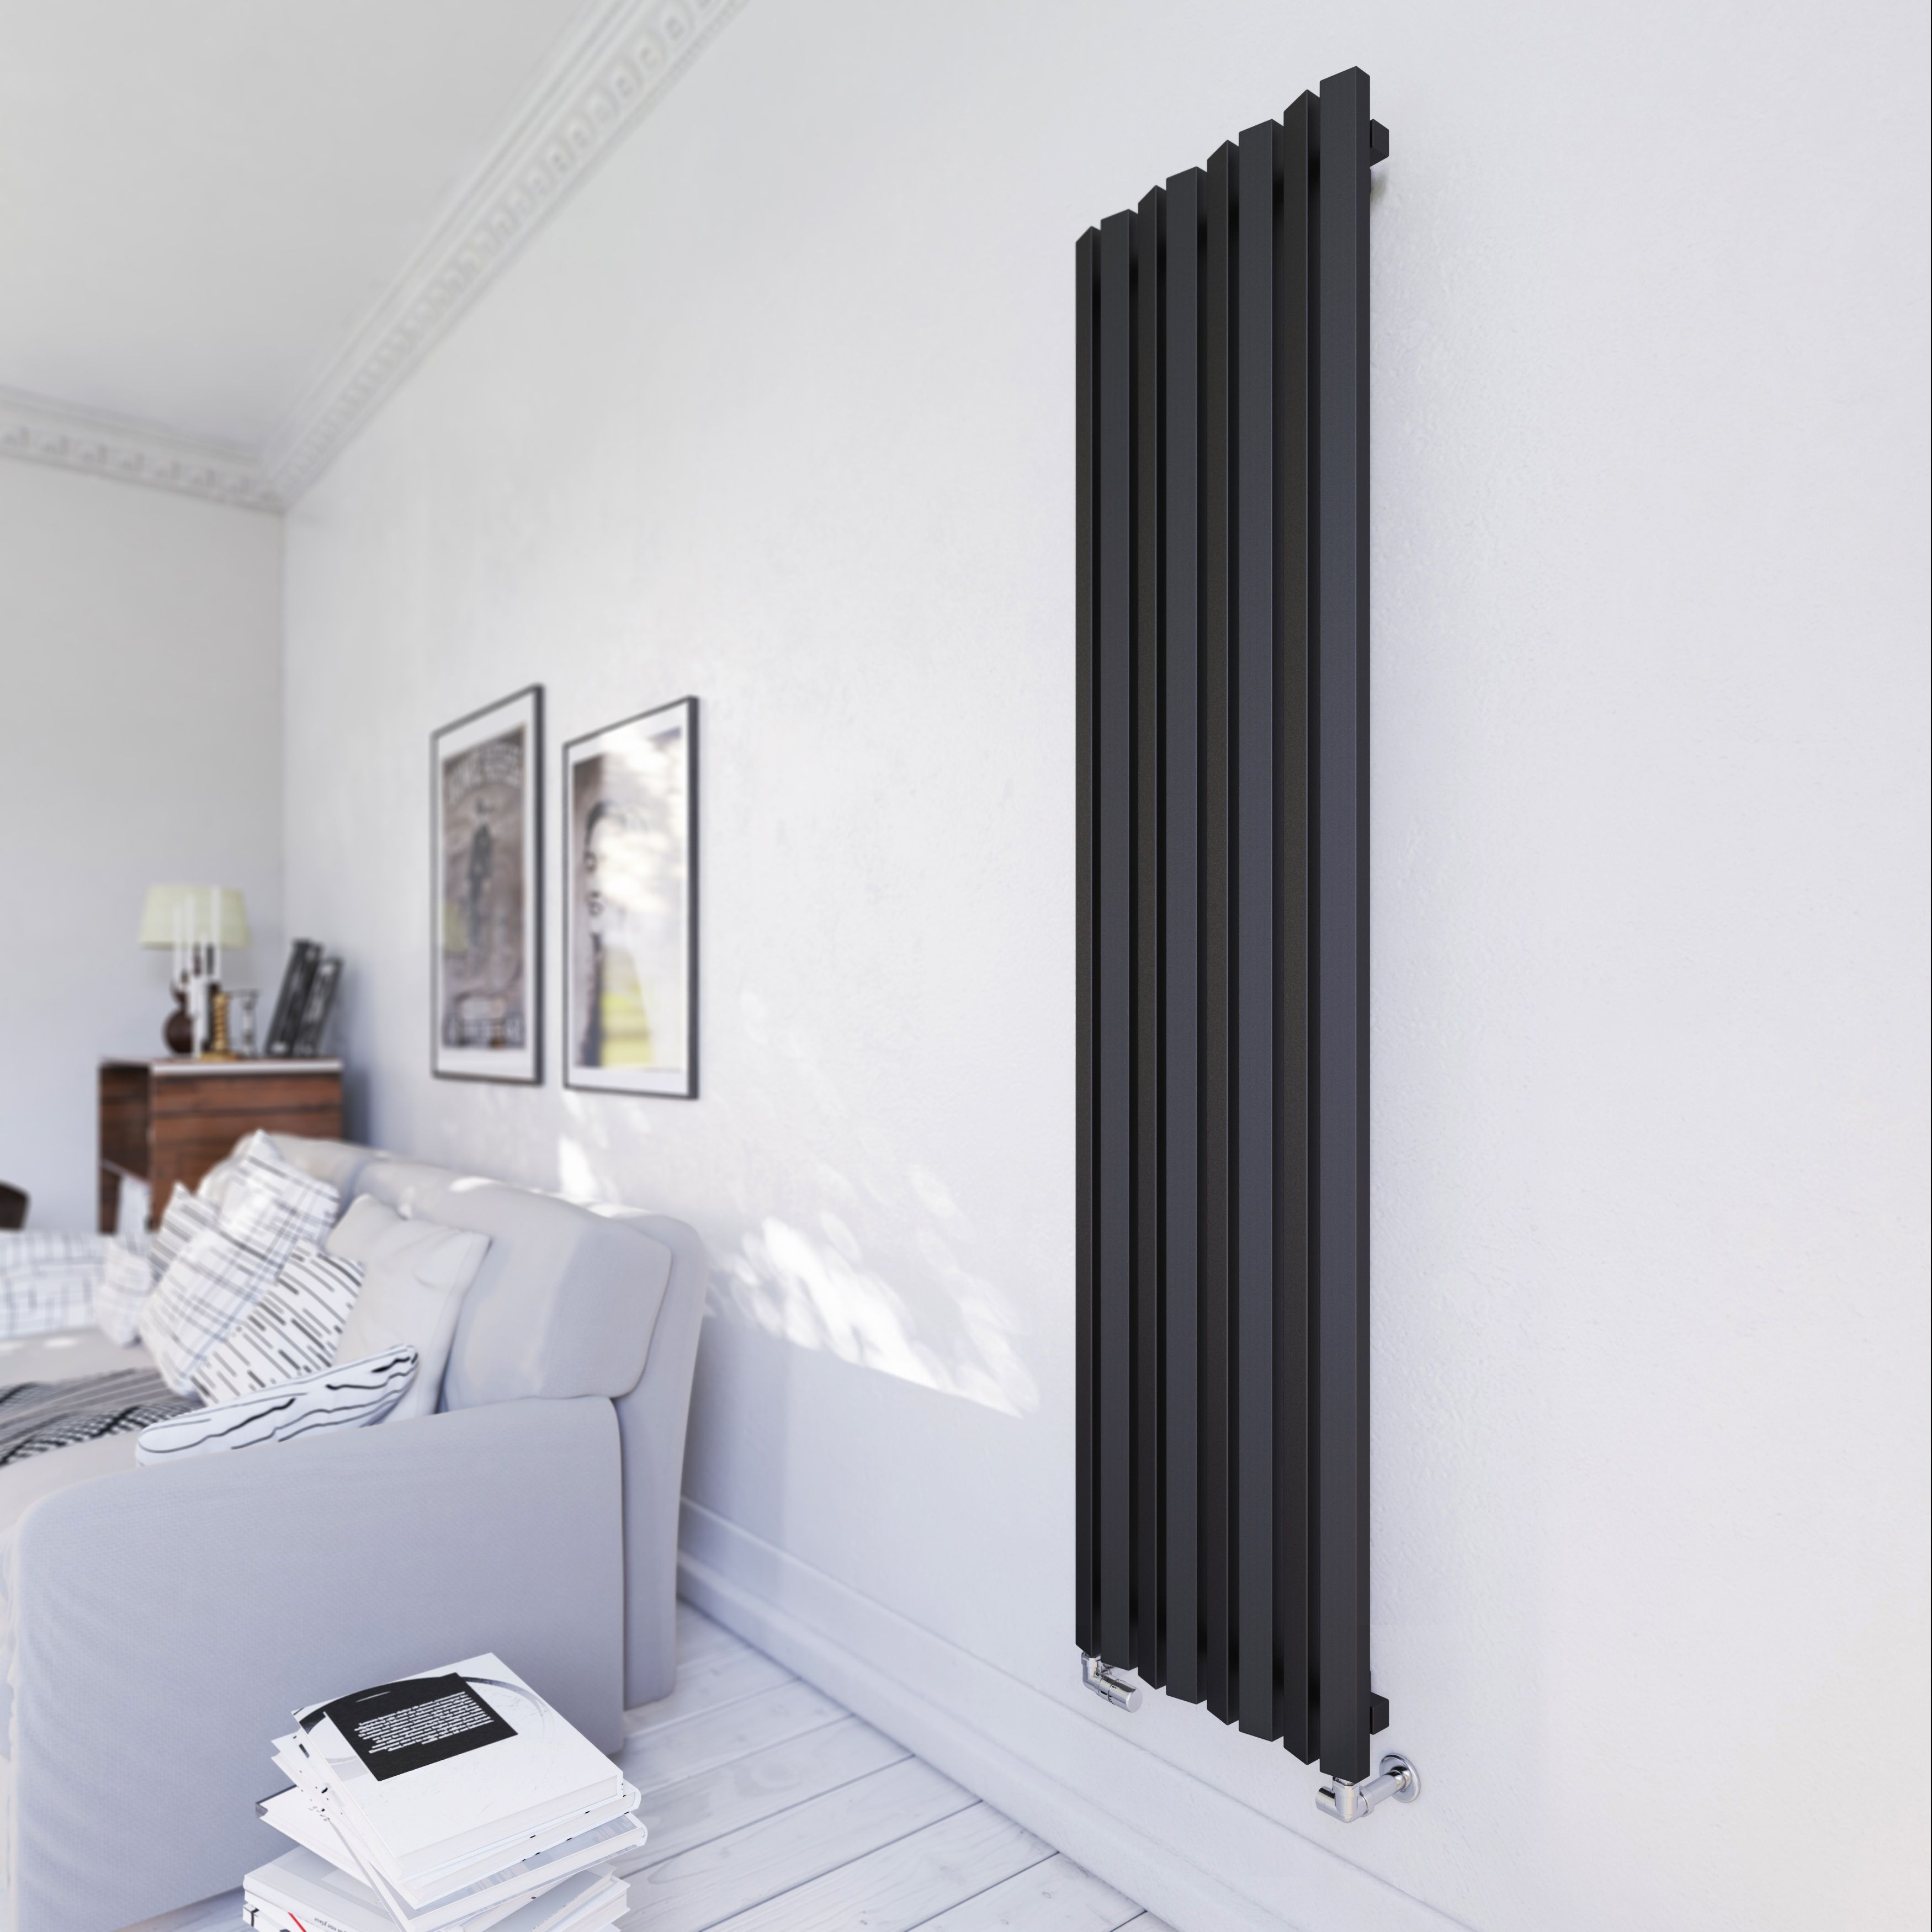 Terma Durham Vertical Radiator Metallic black Textured (H)1800